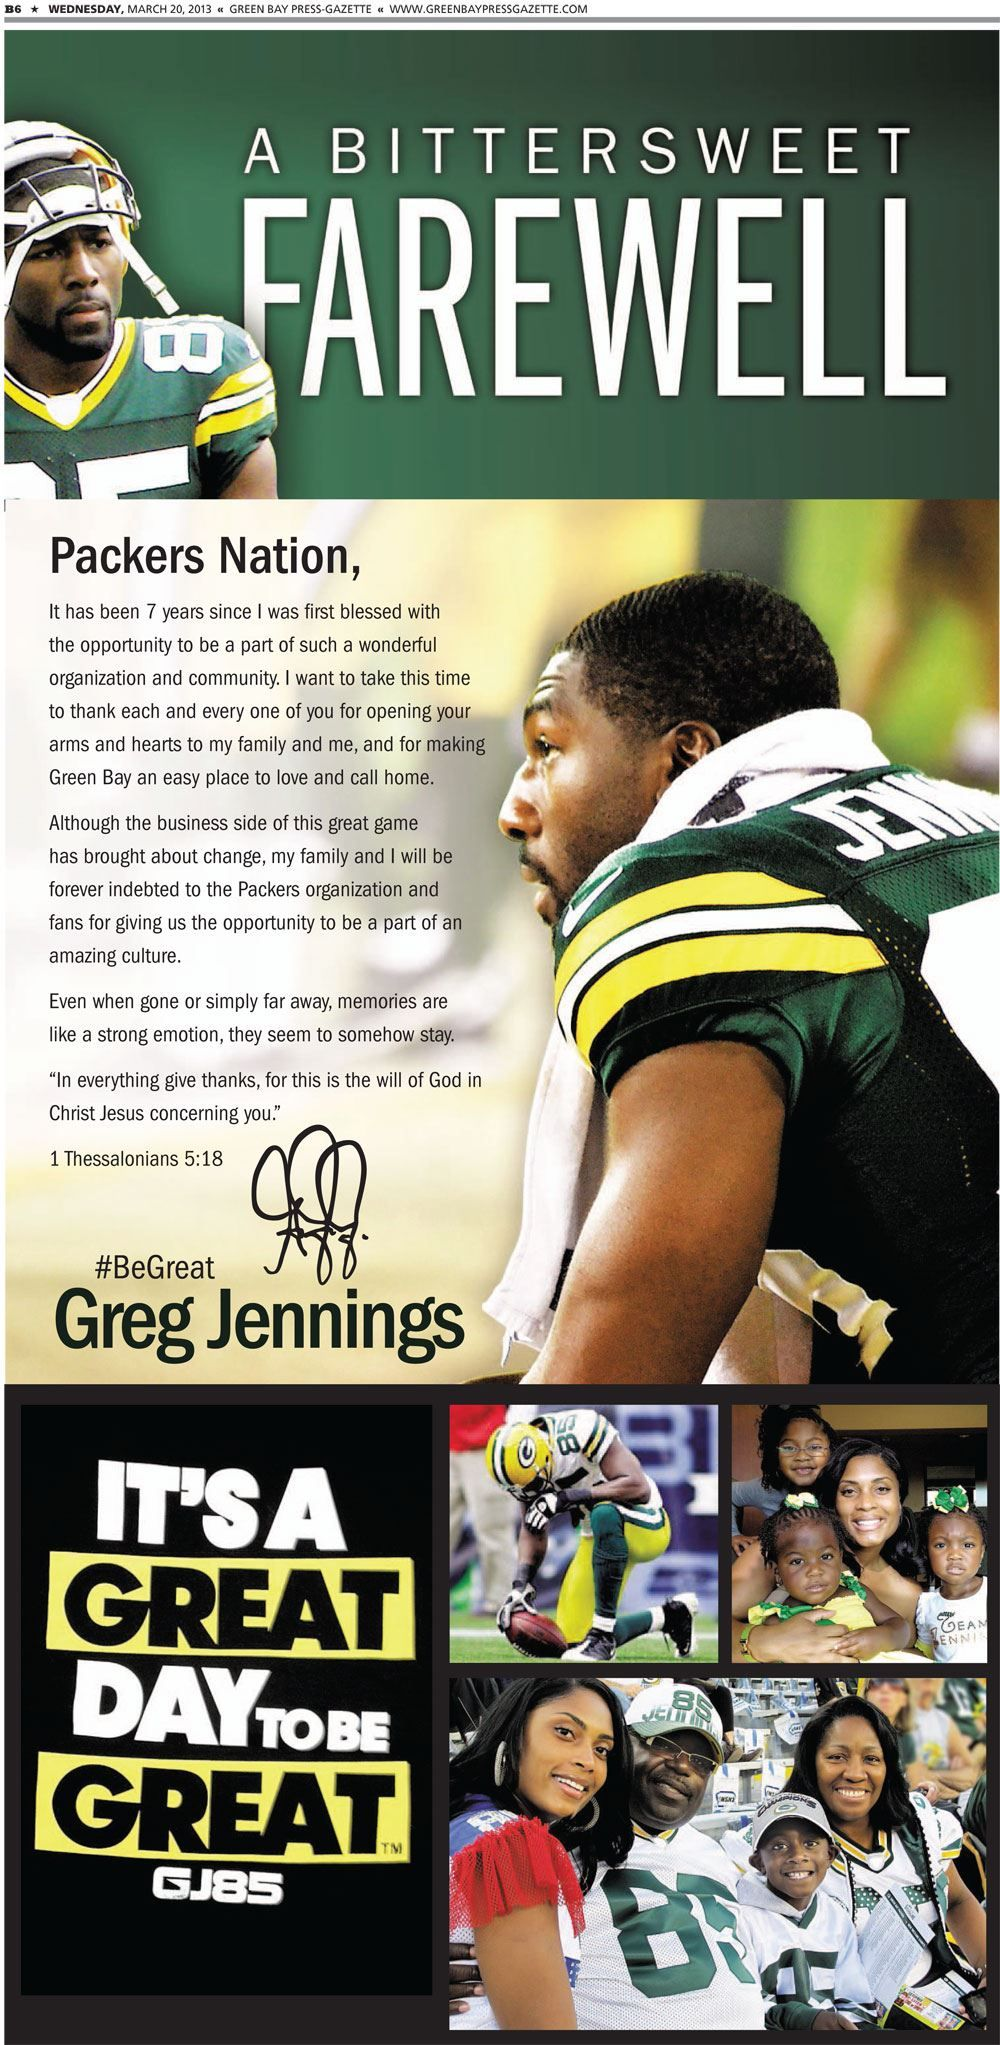 Greg Jennings Took Out This Ad In The Green Bay Press Gazette Today Thanking Fans And The P Green Bay Packers Fans Green Bay Packers Football Green Bay Packers